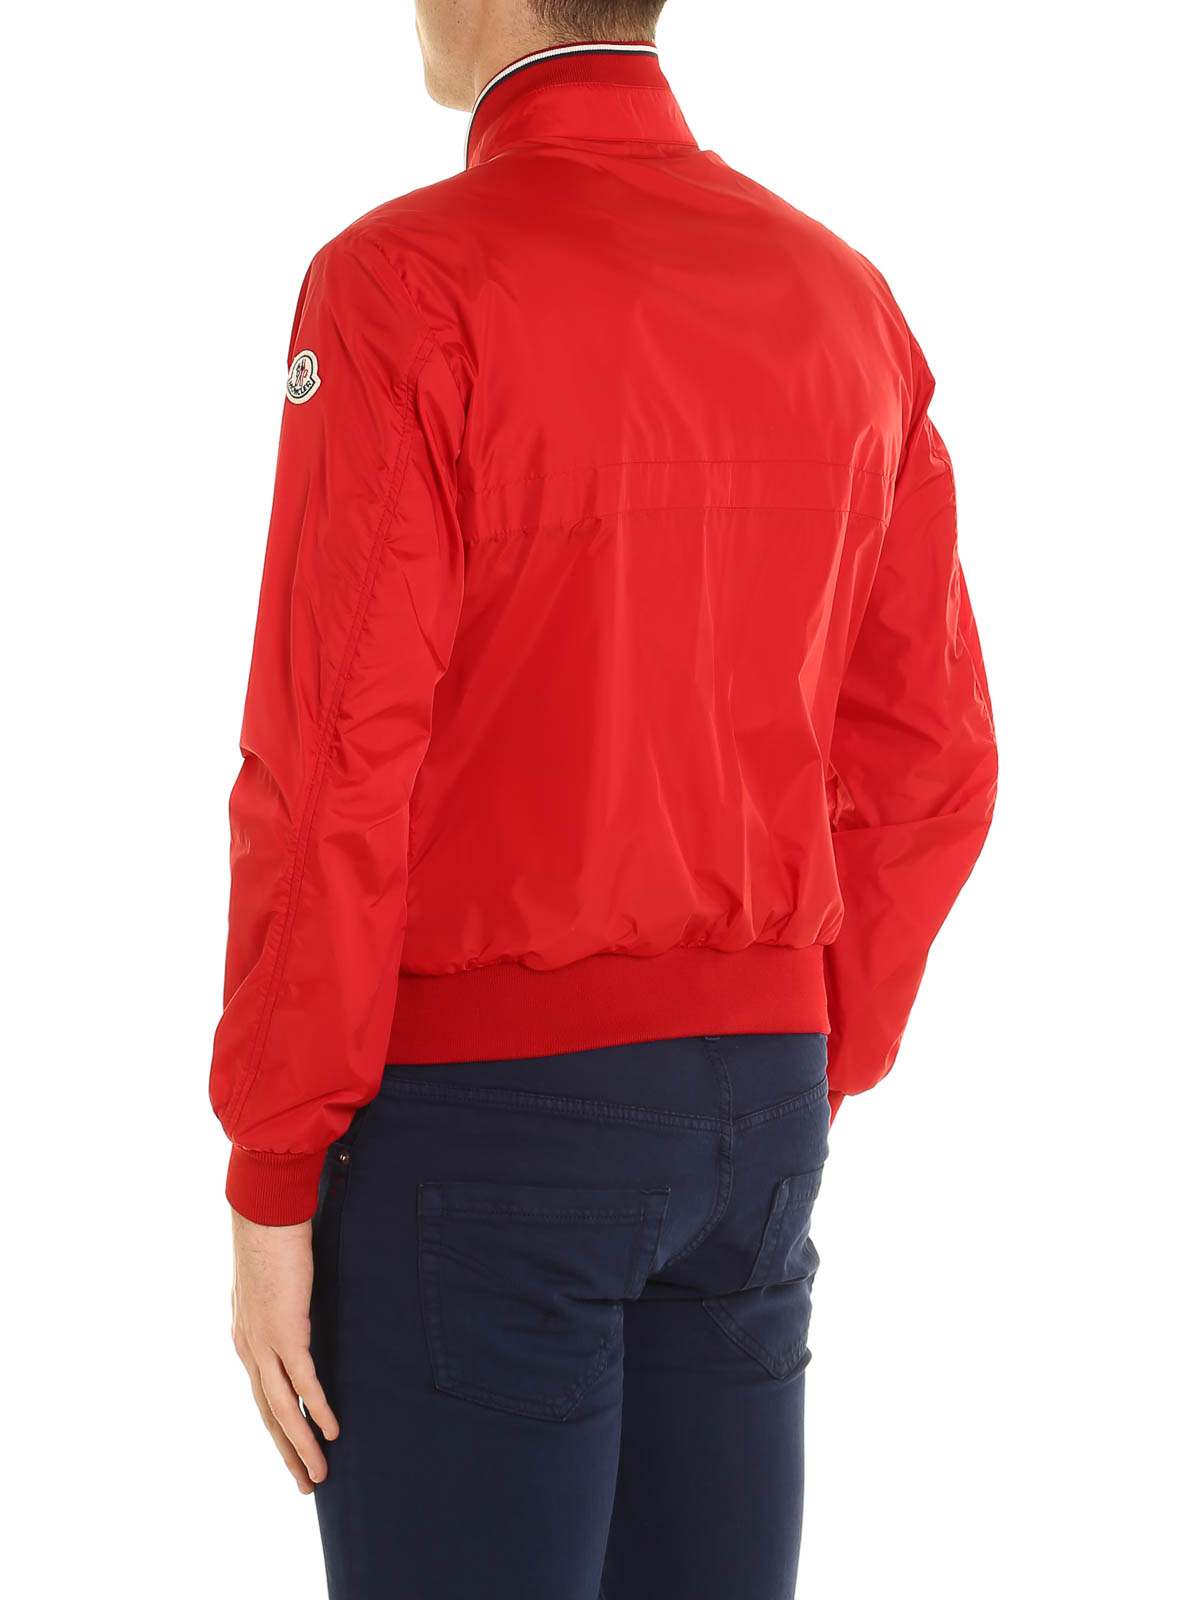 Albert bomber jacket shop online: MONCLER